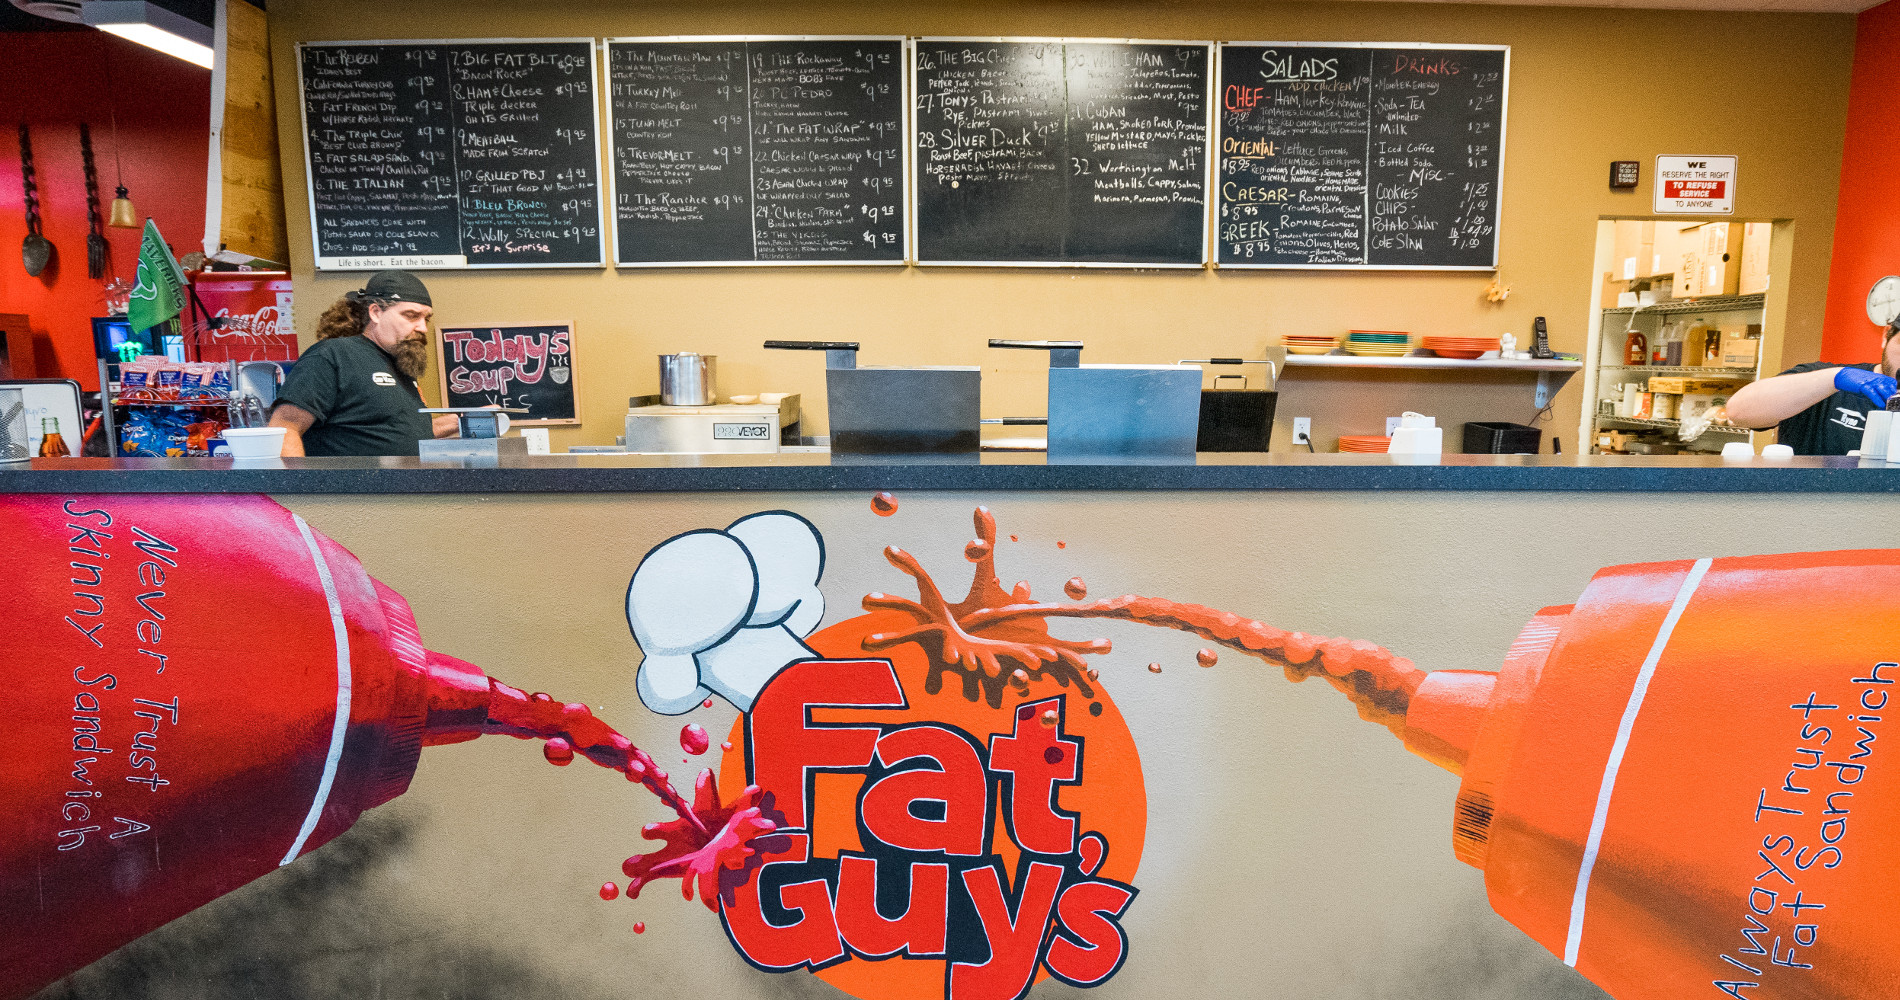 Welcome to Fat Guys Fresh Deli